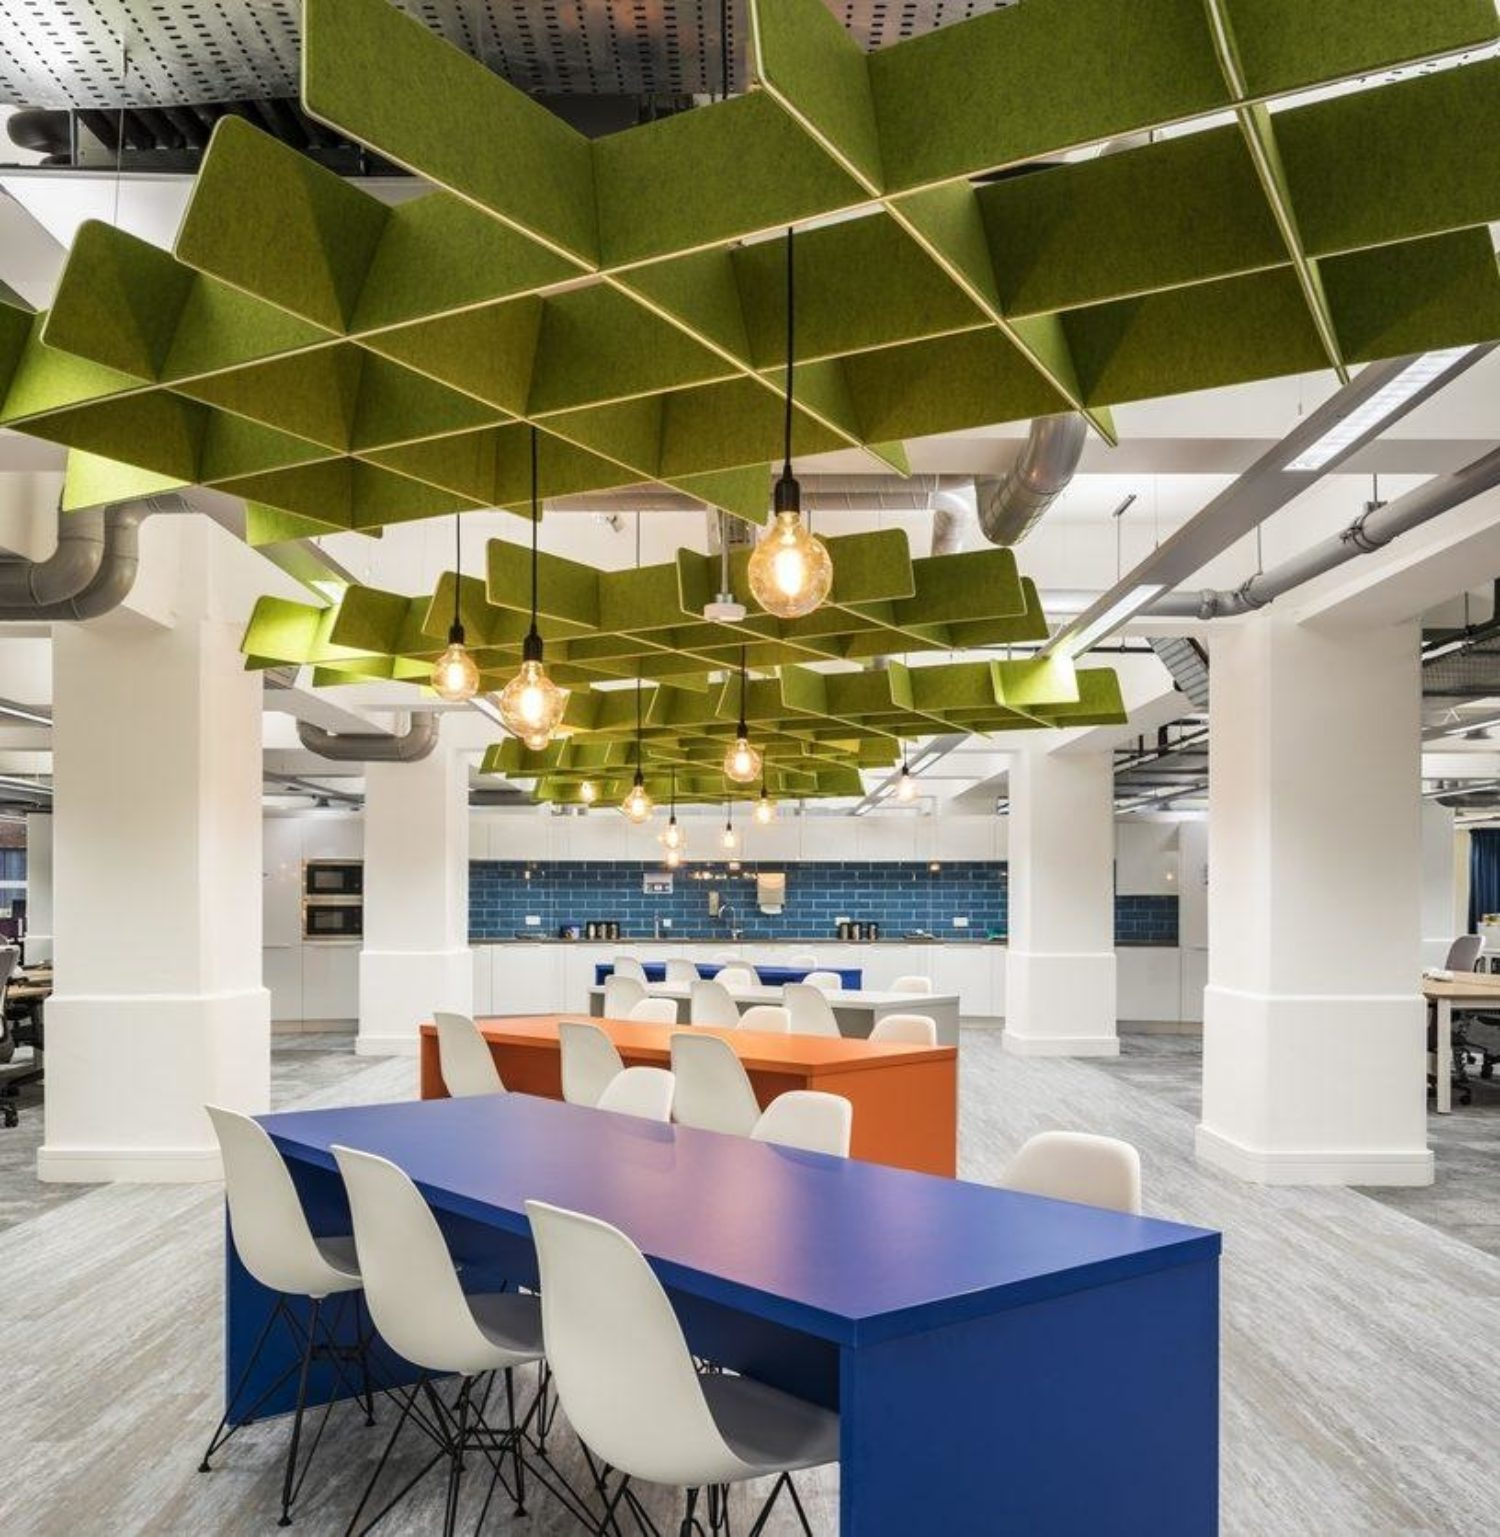 Office communal kitchen acoustic rafts